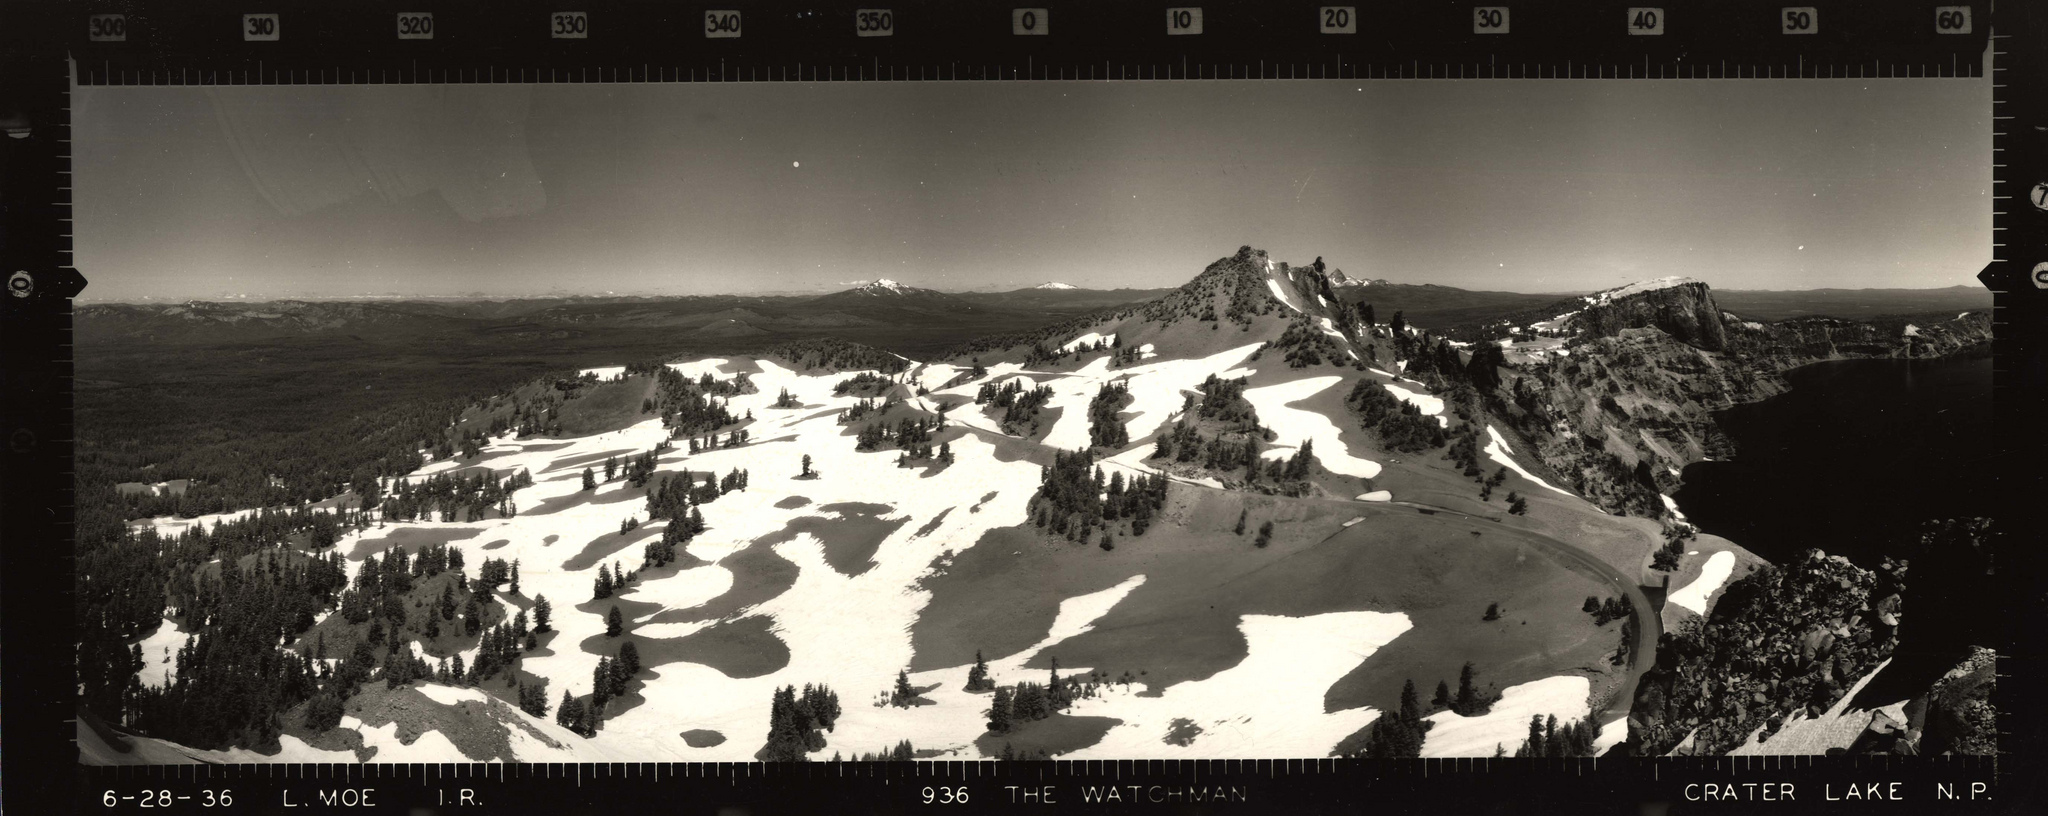 Panoramic view from the Watchman Lookout in Crater Lake National Park. Photographed by Lester M. Moe (USFS) 06/28/1936.    Credit: Courtesy CRLA Museum & Archive Collections